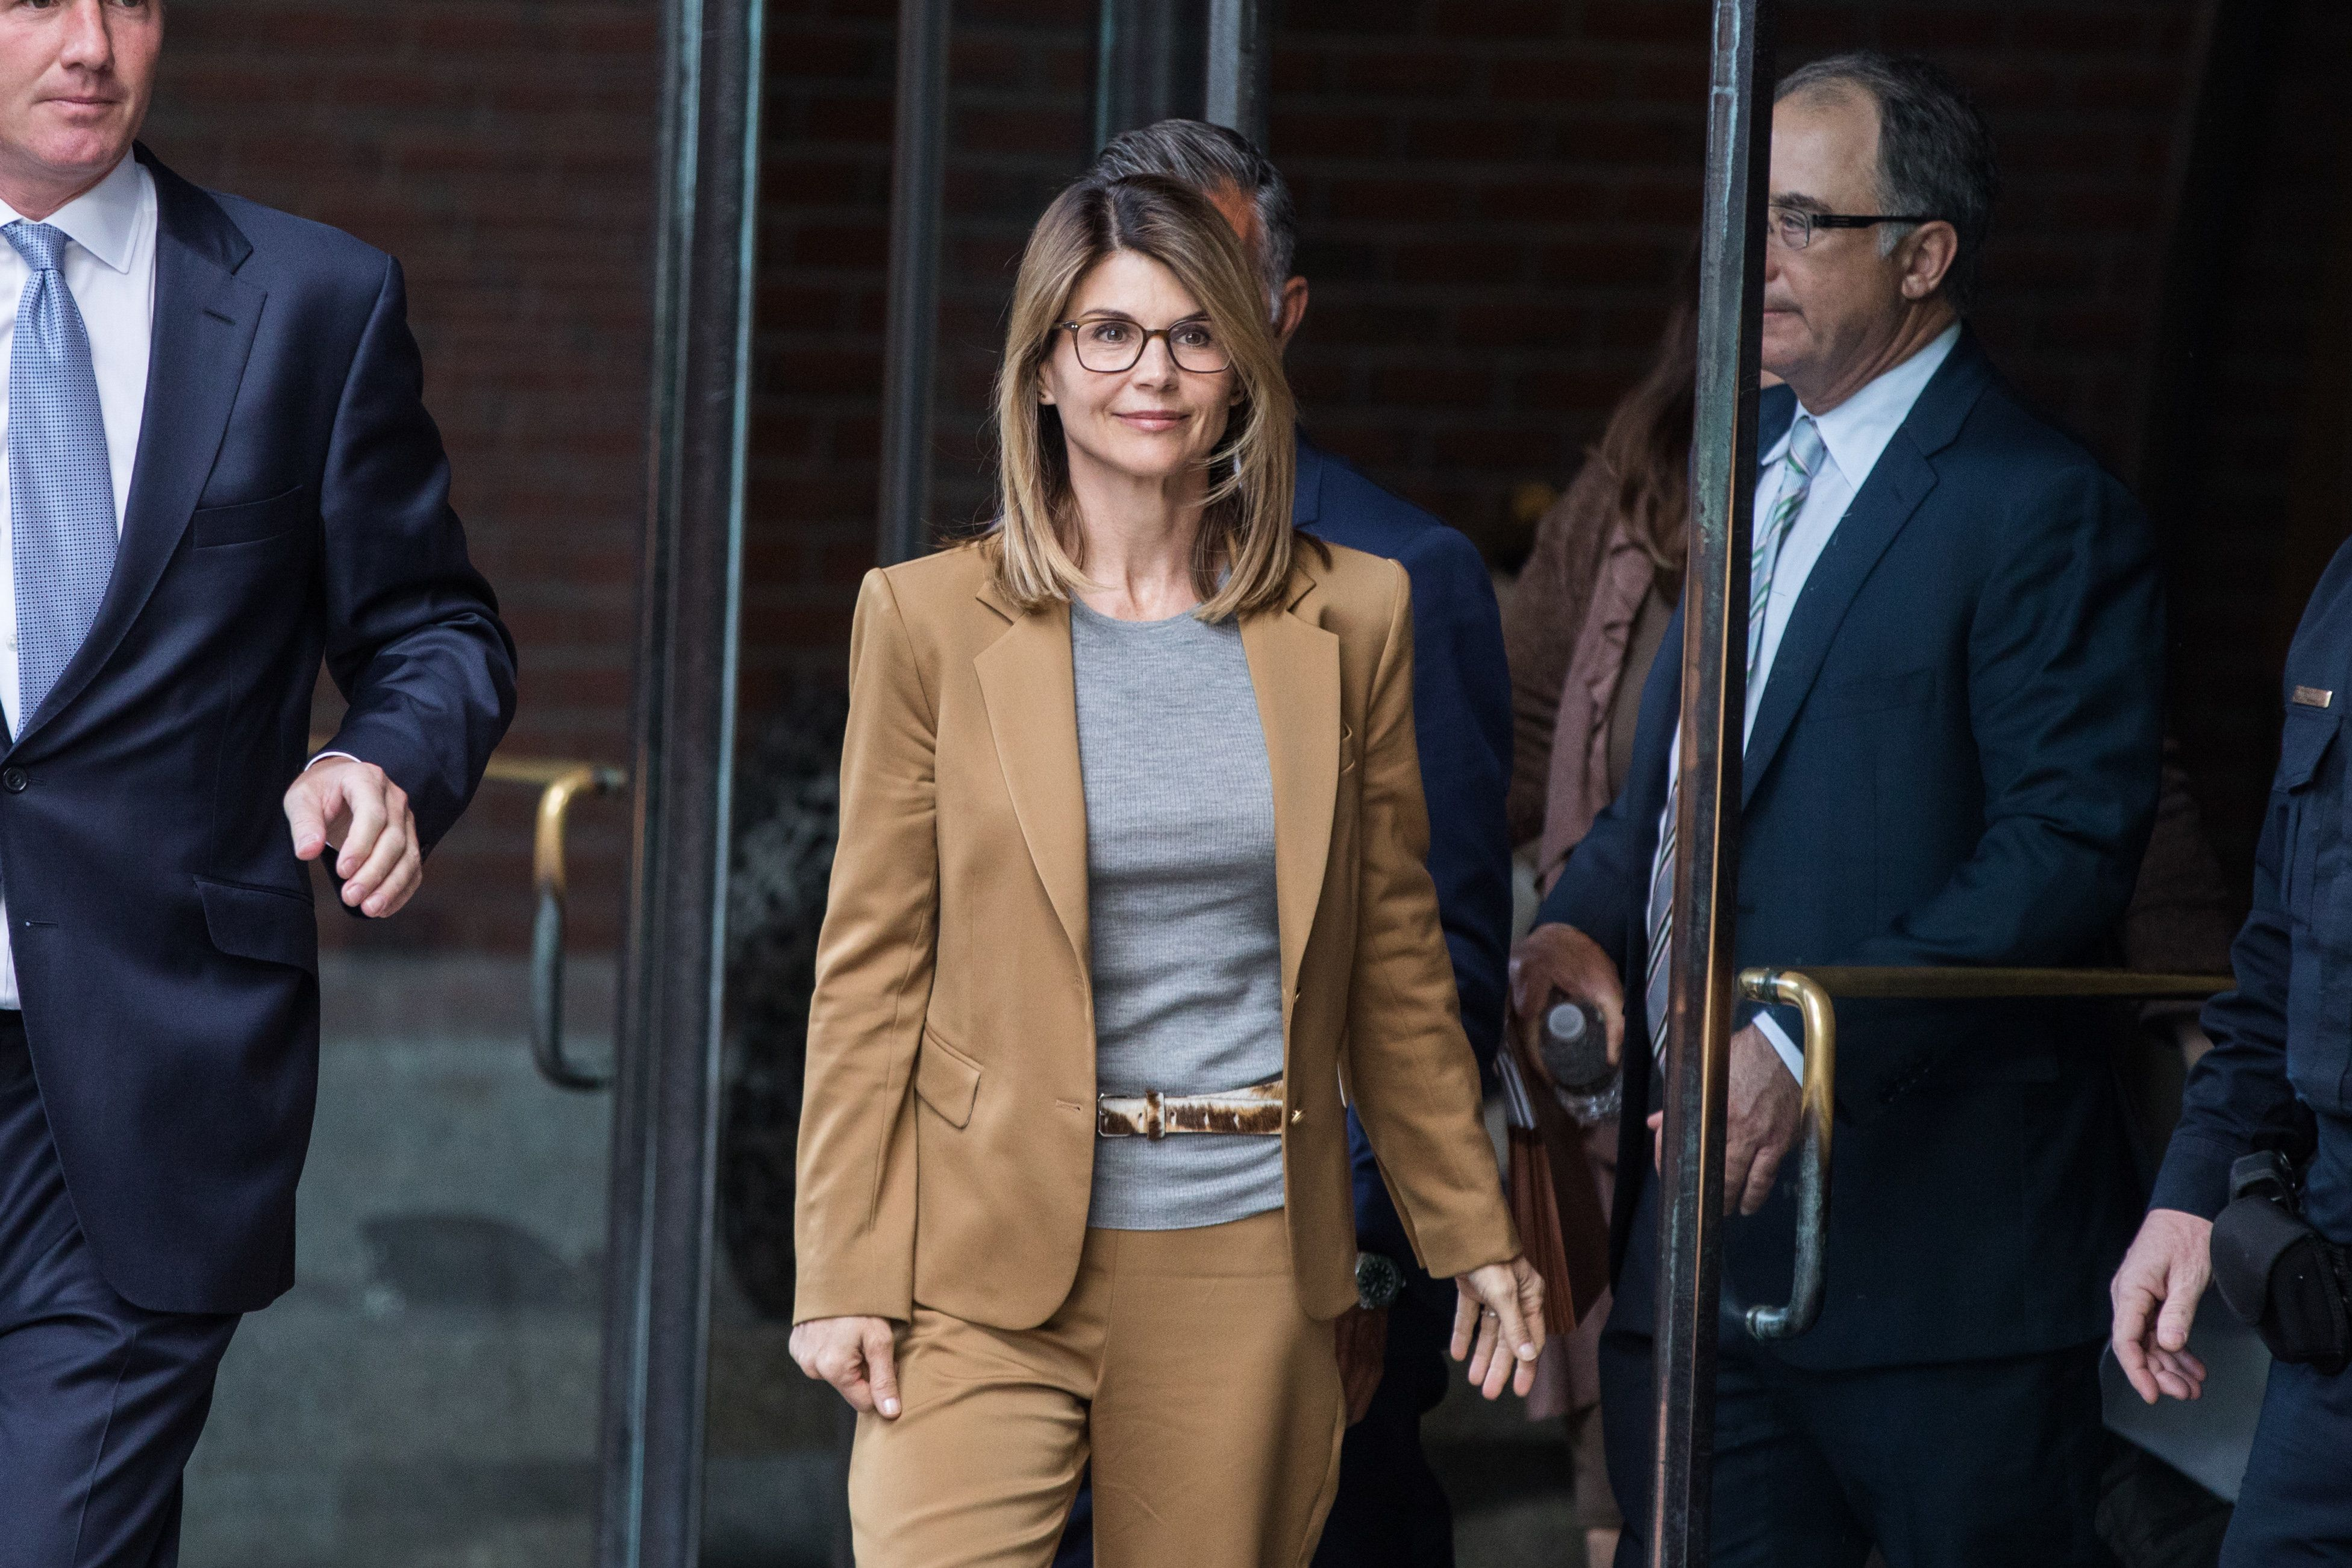 Actress Lori Loughlin exits federal court in Boston on April